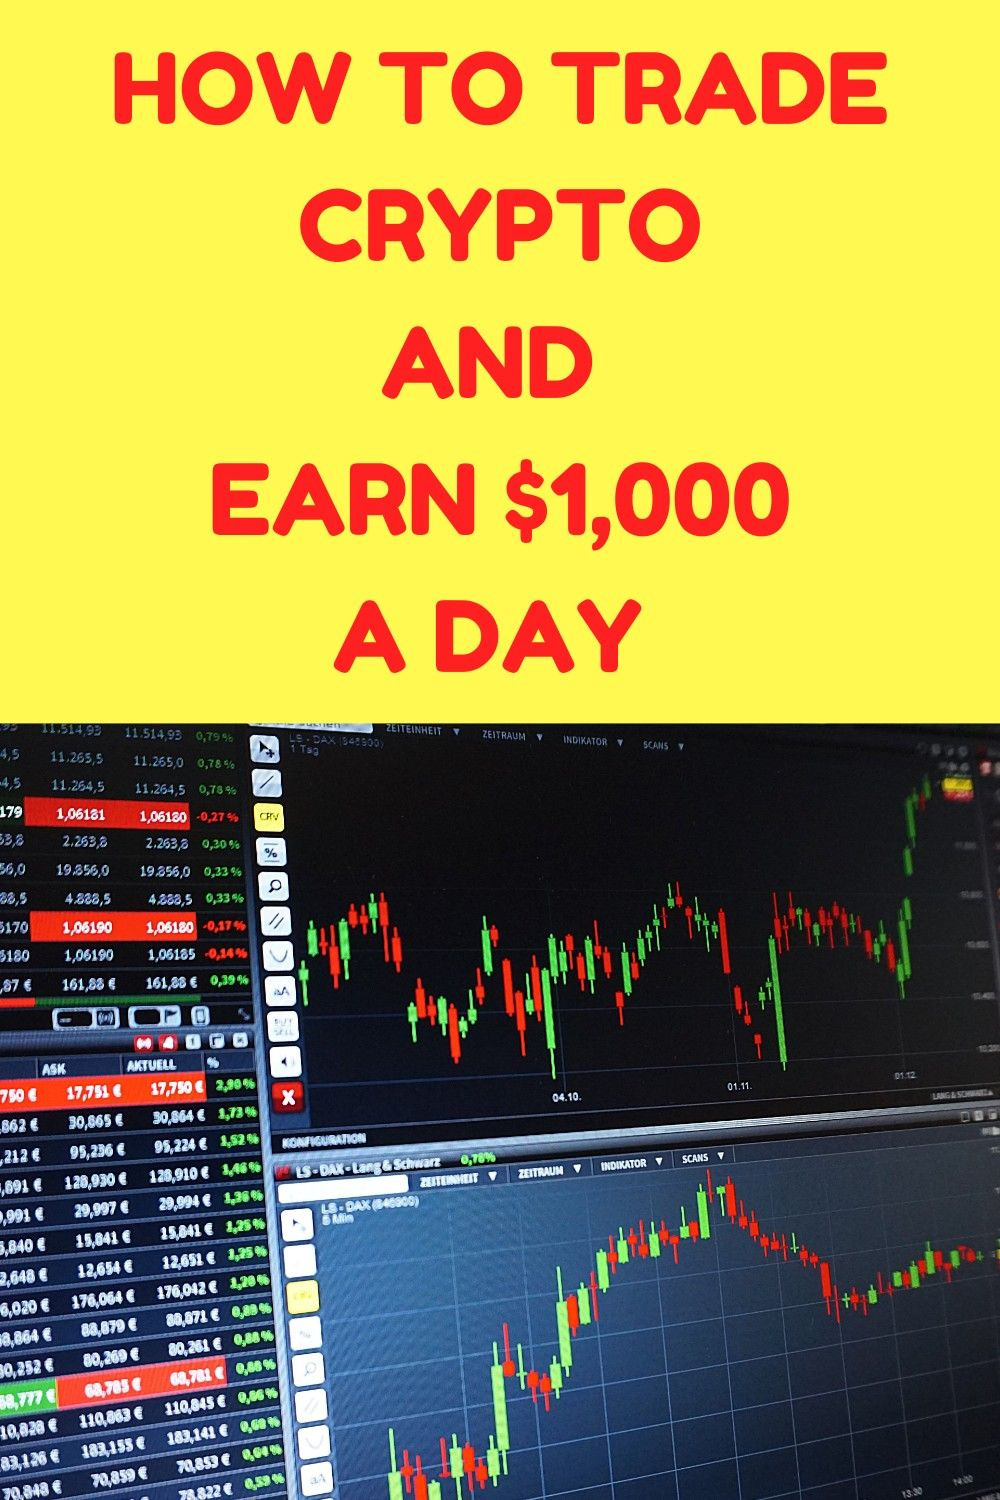 How To Earn 1000 A Day Trading Cryptocurrency Cryptocurrency Trading Cryptocurrency Trading Quotes